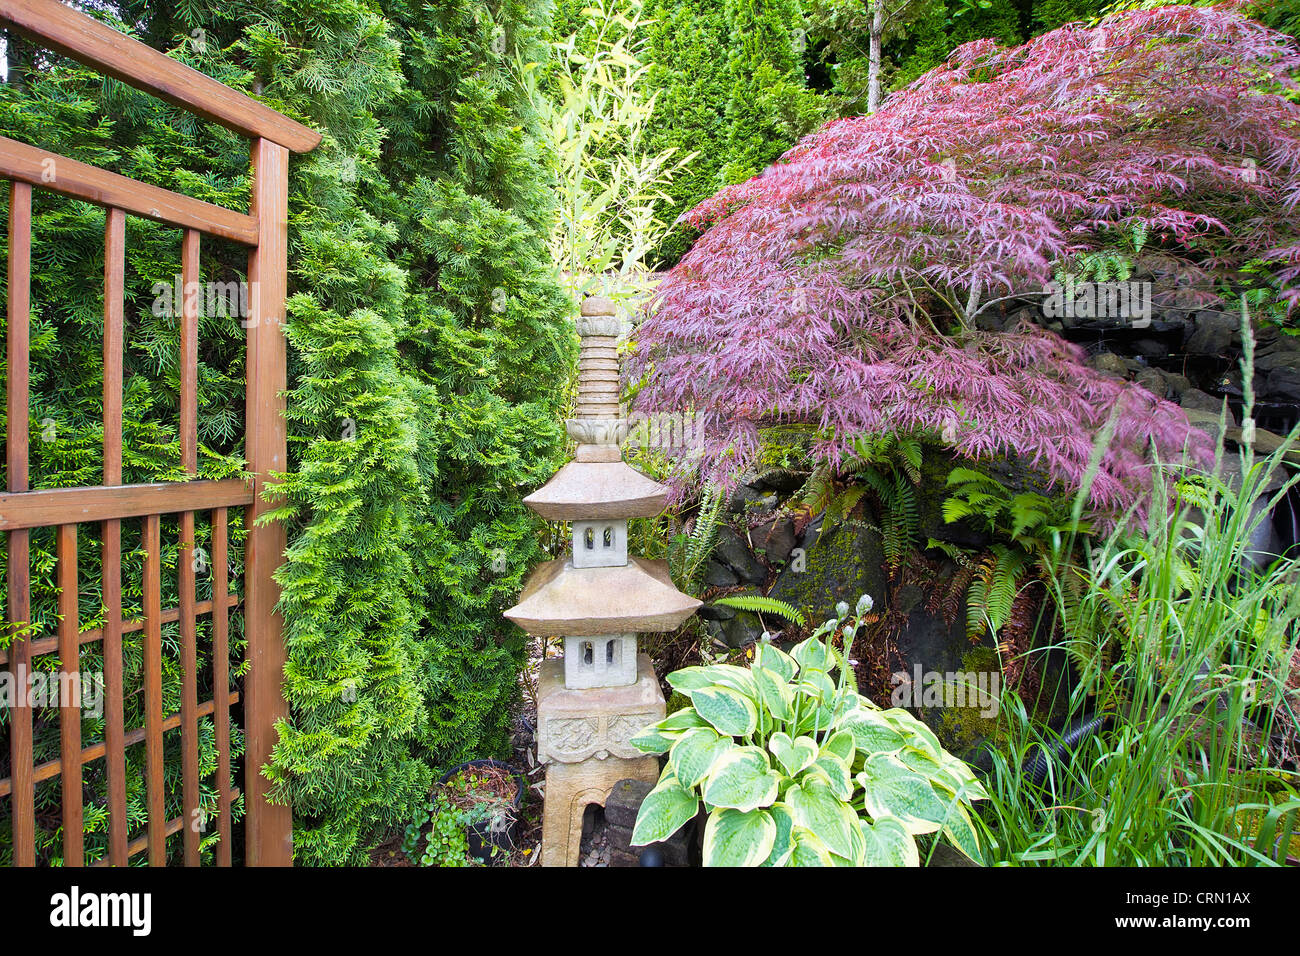 Japanese Inspired Garden With Stone Pagoda Trellis And Maple Tree